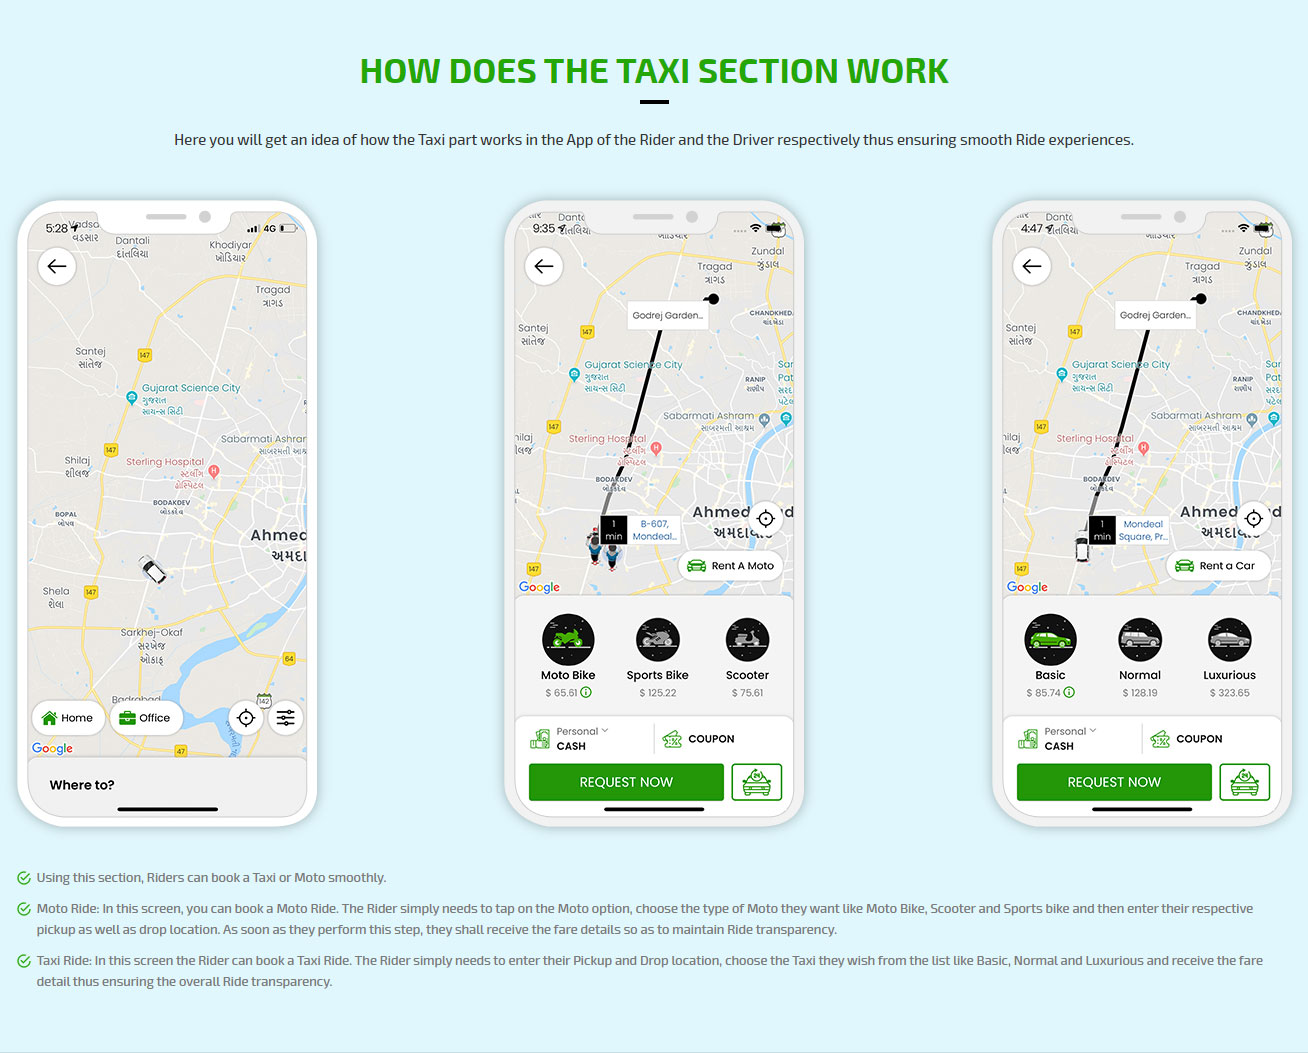 How does the taxi section work